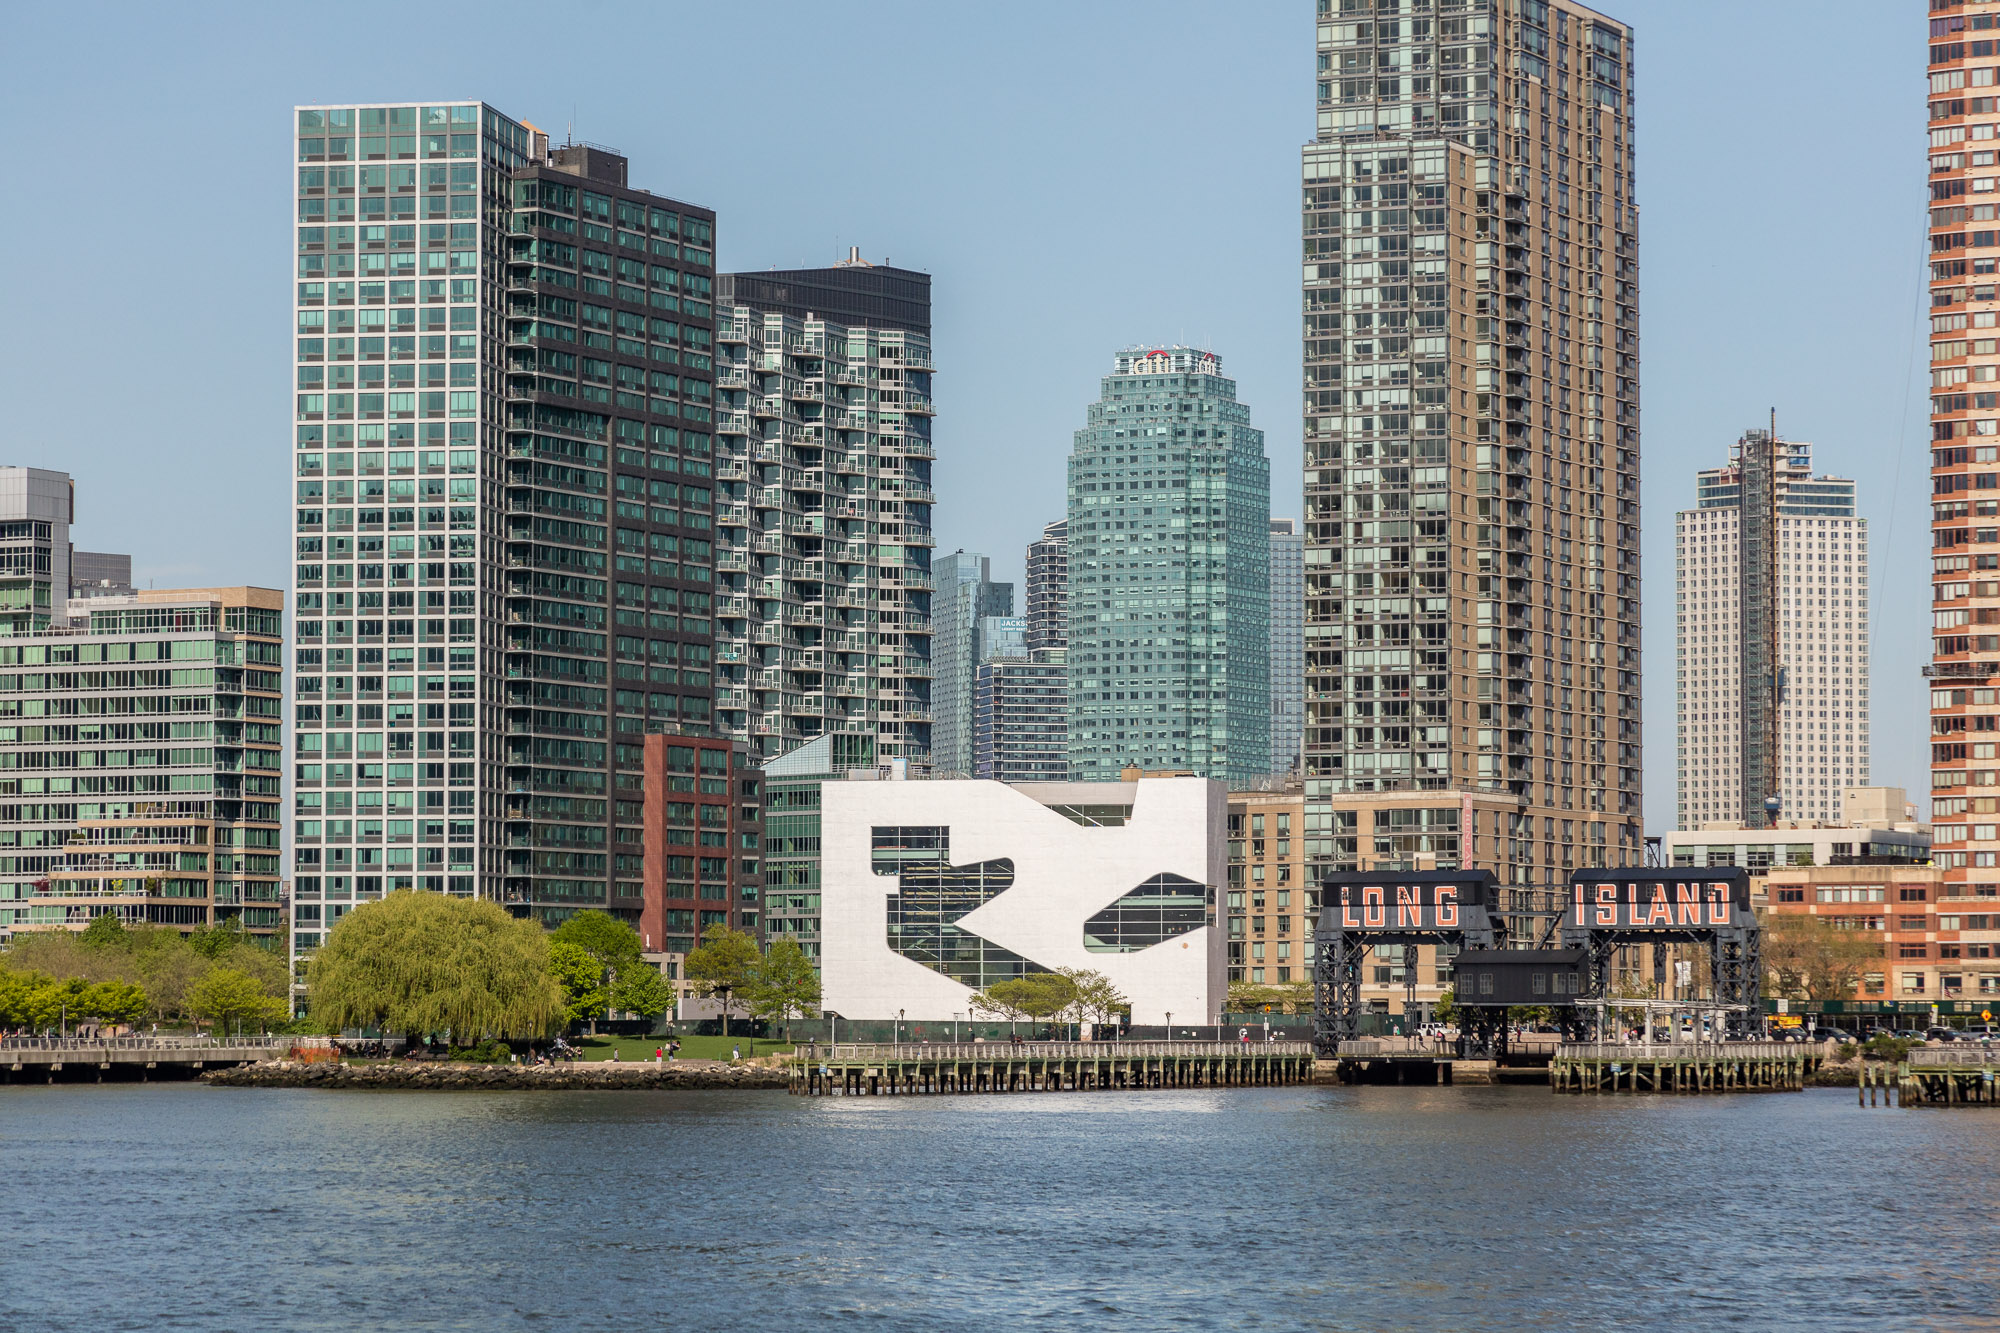 A small white building with cut-outs on its facade sits on a waterfront site. It is surrounded by tall glass buildings.